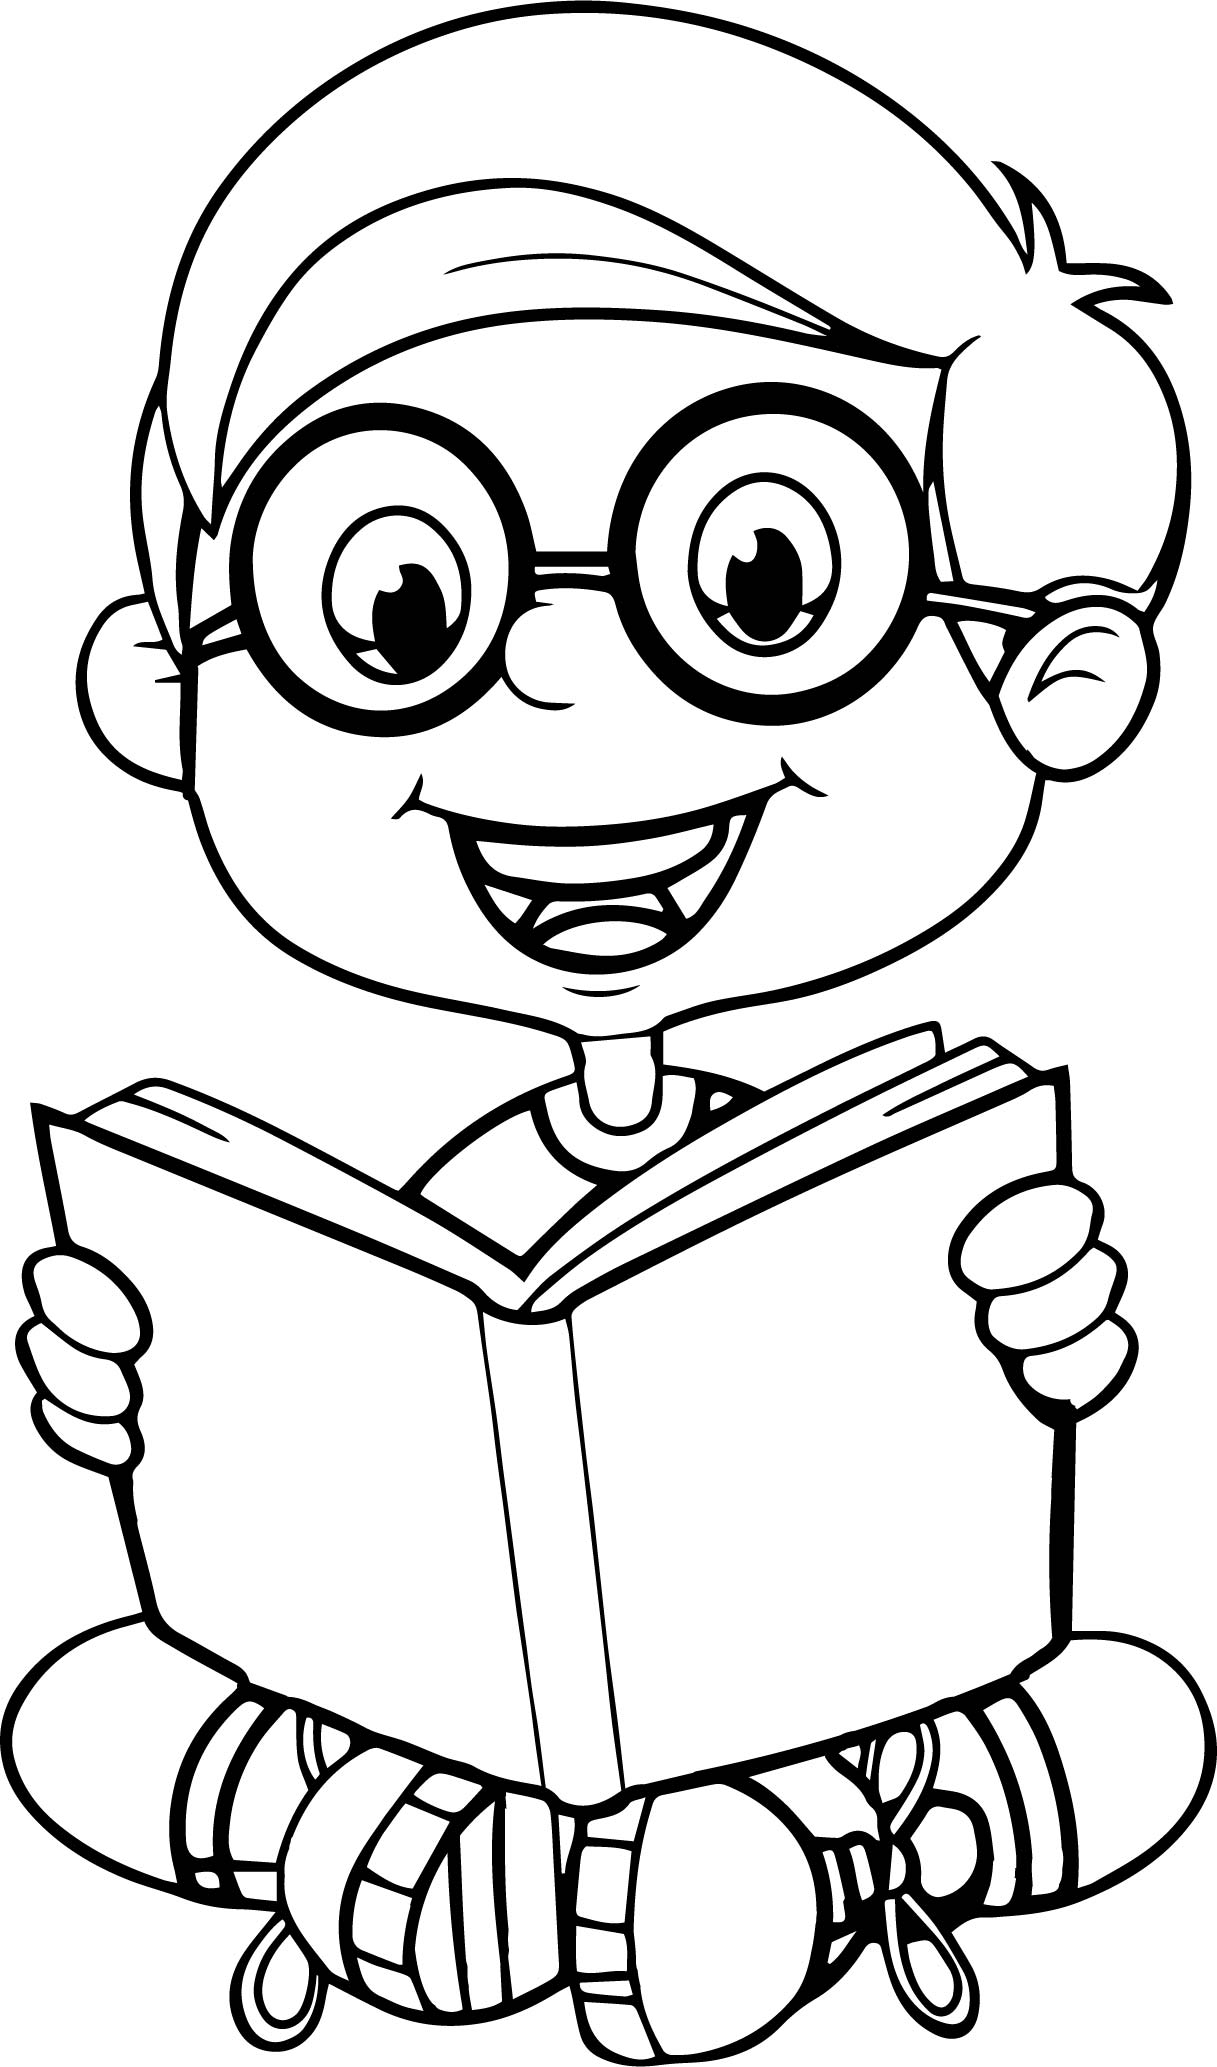 Reading A Book Cute Cartoon Kid Coloring Page | Wecoloringpage